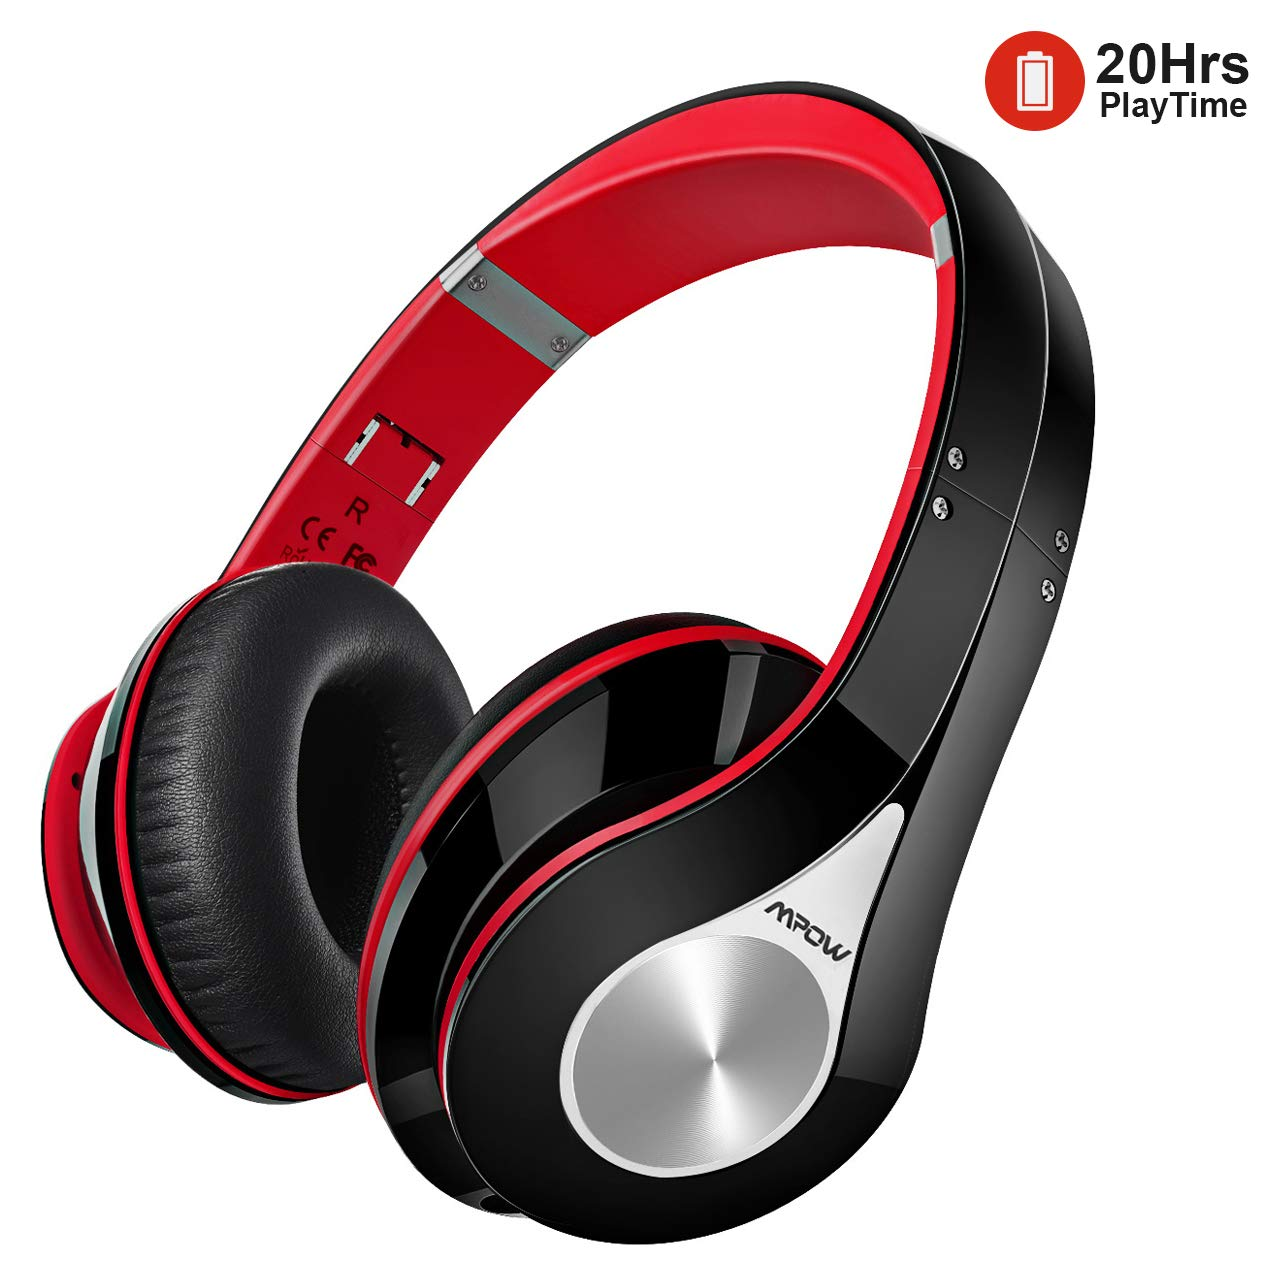 97a0e522d43 Bluetooth Headphones, [Up to 20 Hrs] Mpow Wireless Over-Ear Foldable Hi-Fi  Stereo Headset, Snug Earmuffs, Built-In Noise Cancelling Microphone for ...